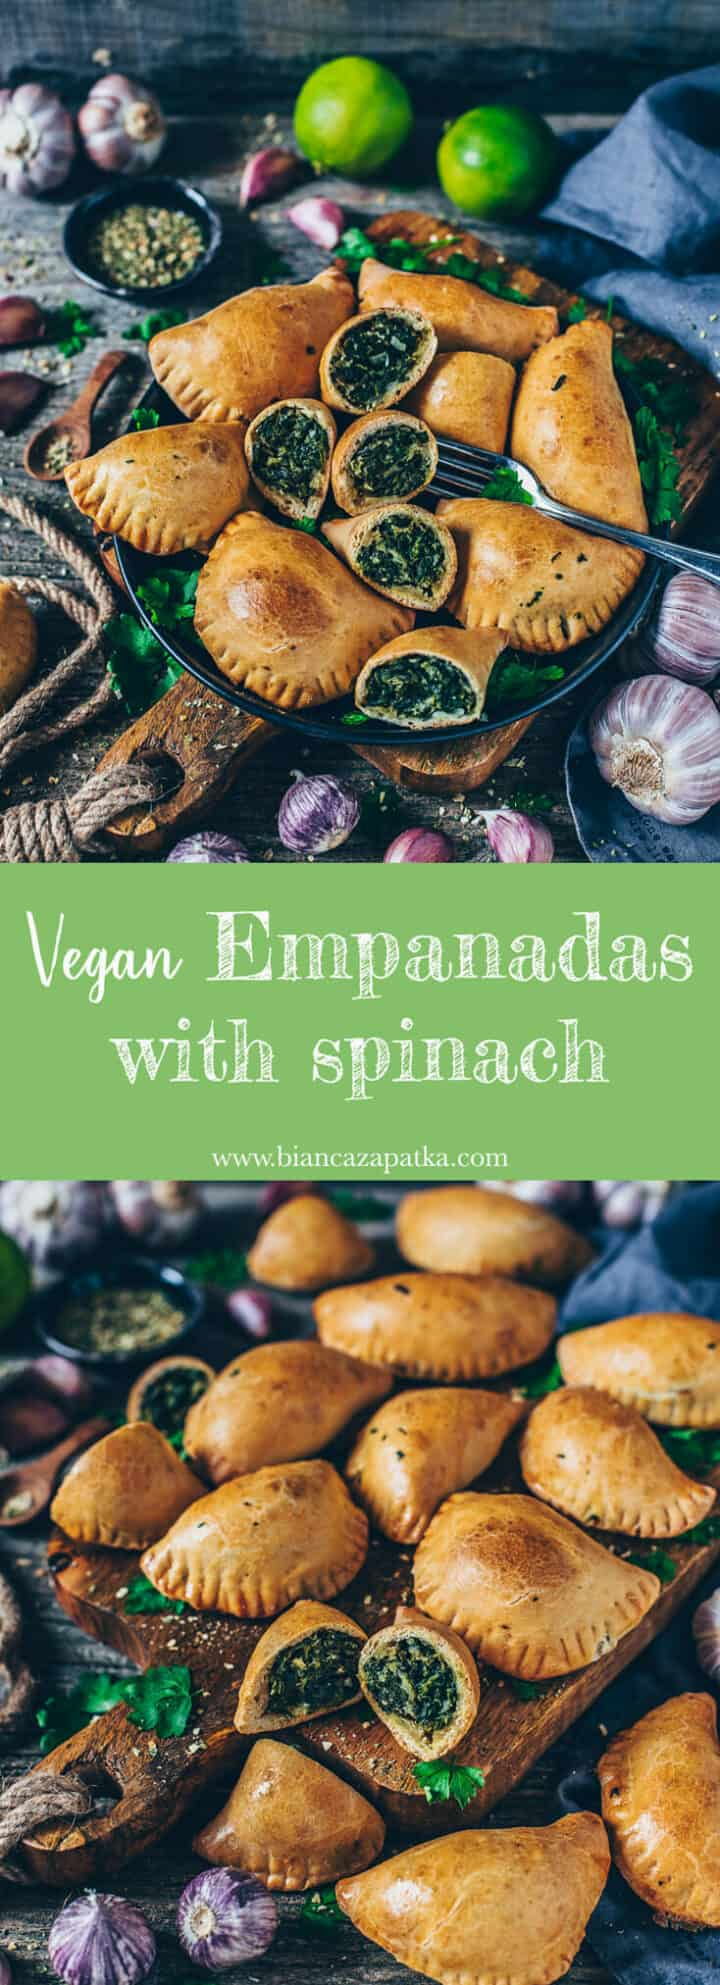 These vegan dumplings are the perfect finger food snacks, hot or cold they're delicious. They're filled with garlic spinach but you can add anything you like! They can be prepared with gluten-free corn flour or regular wheat/ spelt  flour.